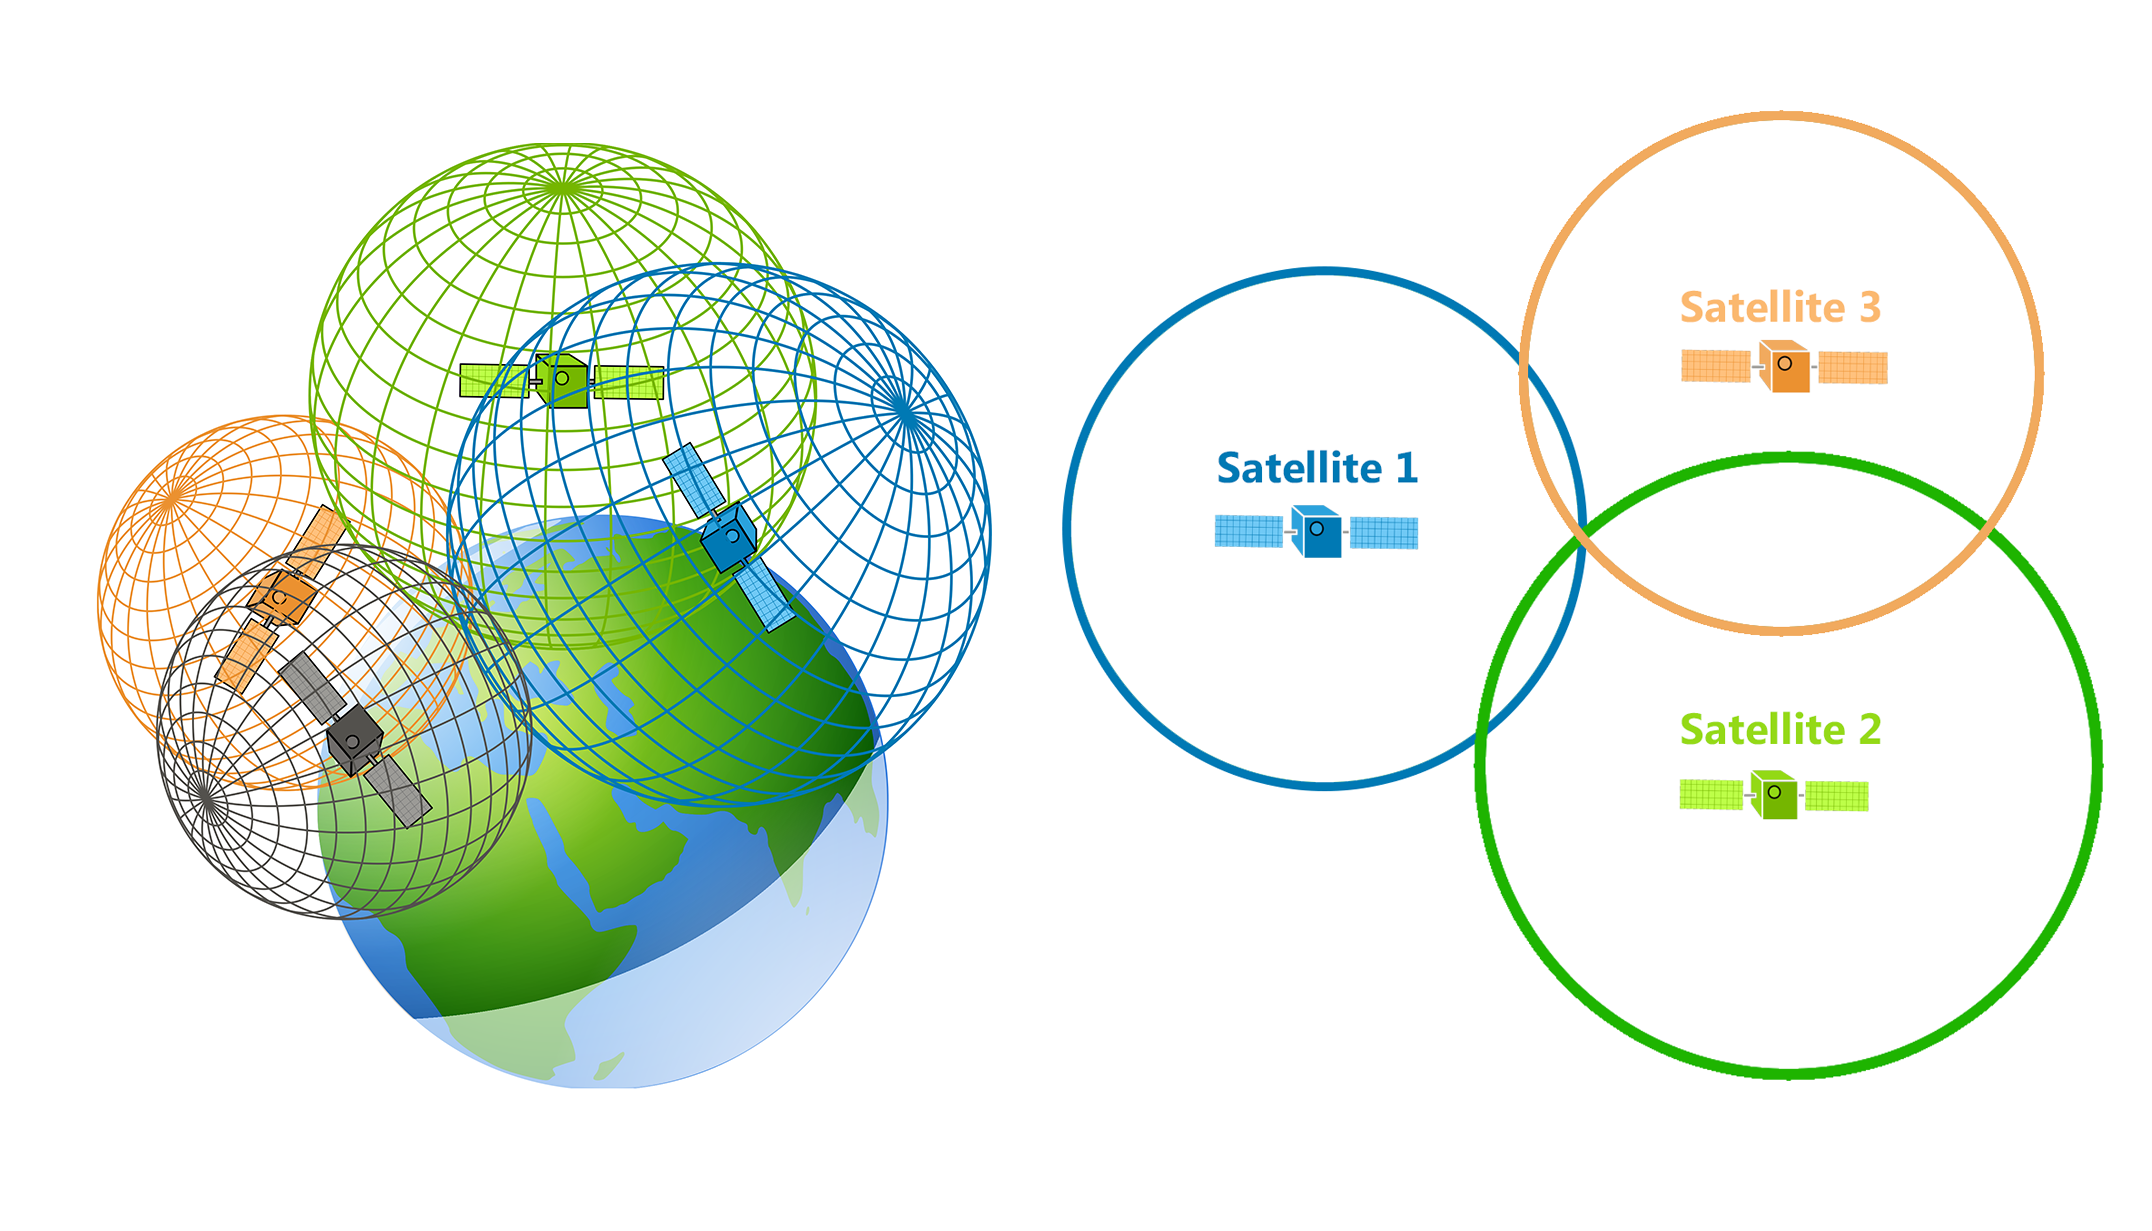 trilateration vs triangulation - how gps receivers work - gis geography